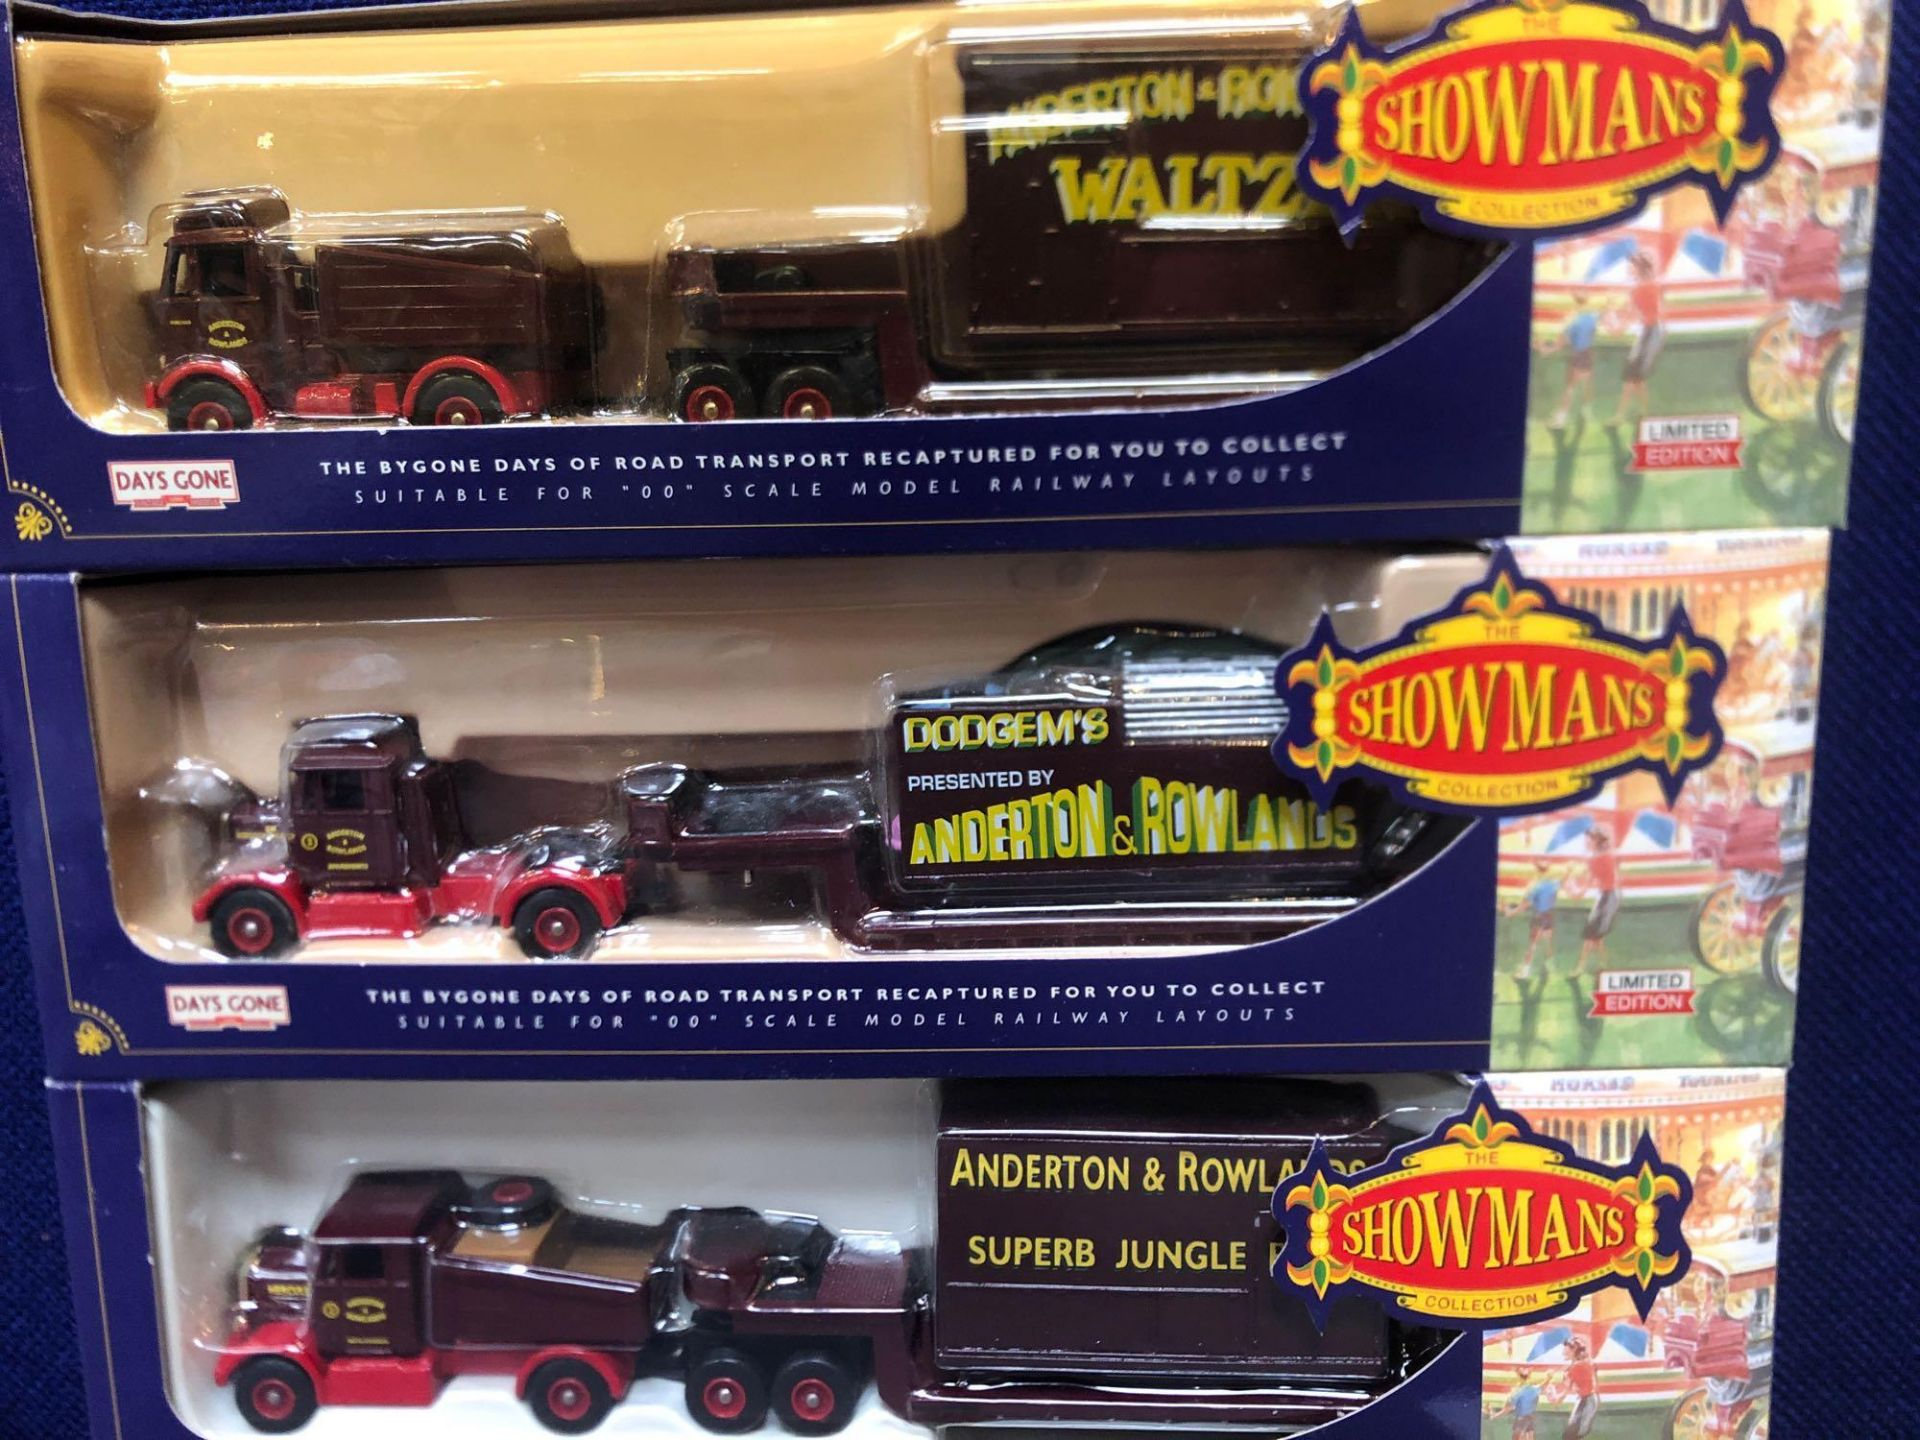 3 X Days Gone By Diecast The Showman's Collection Limited Edition Fairground Vehicles In Boxes - Image 2 of 2